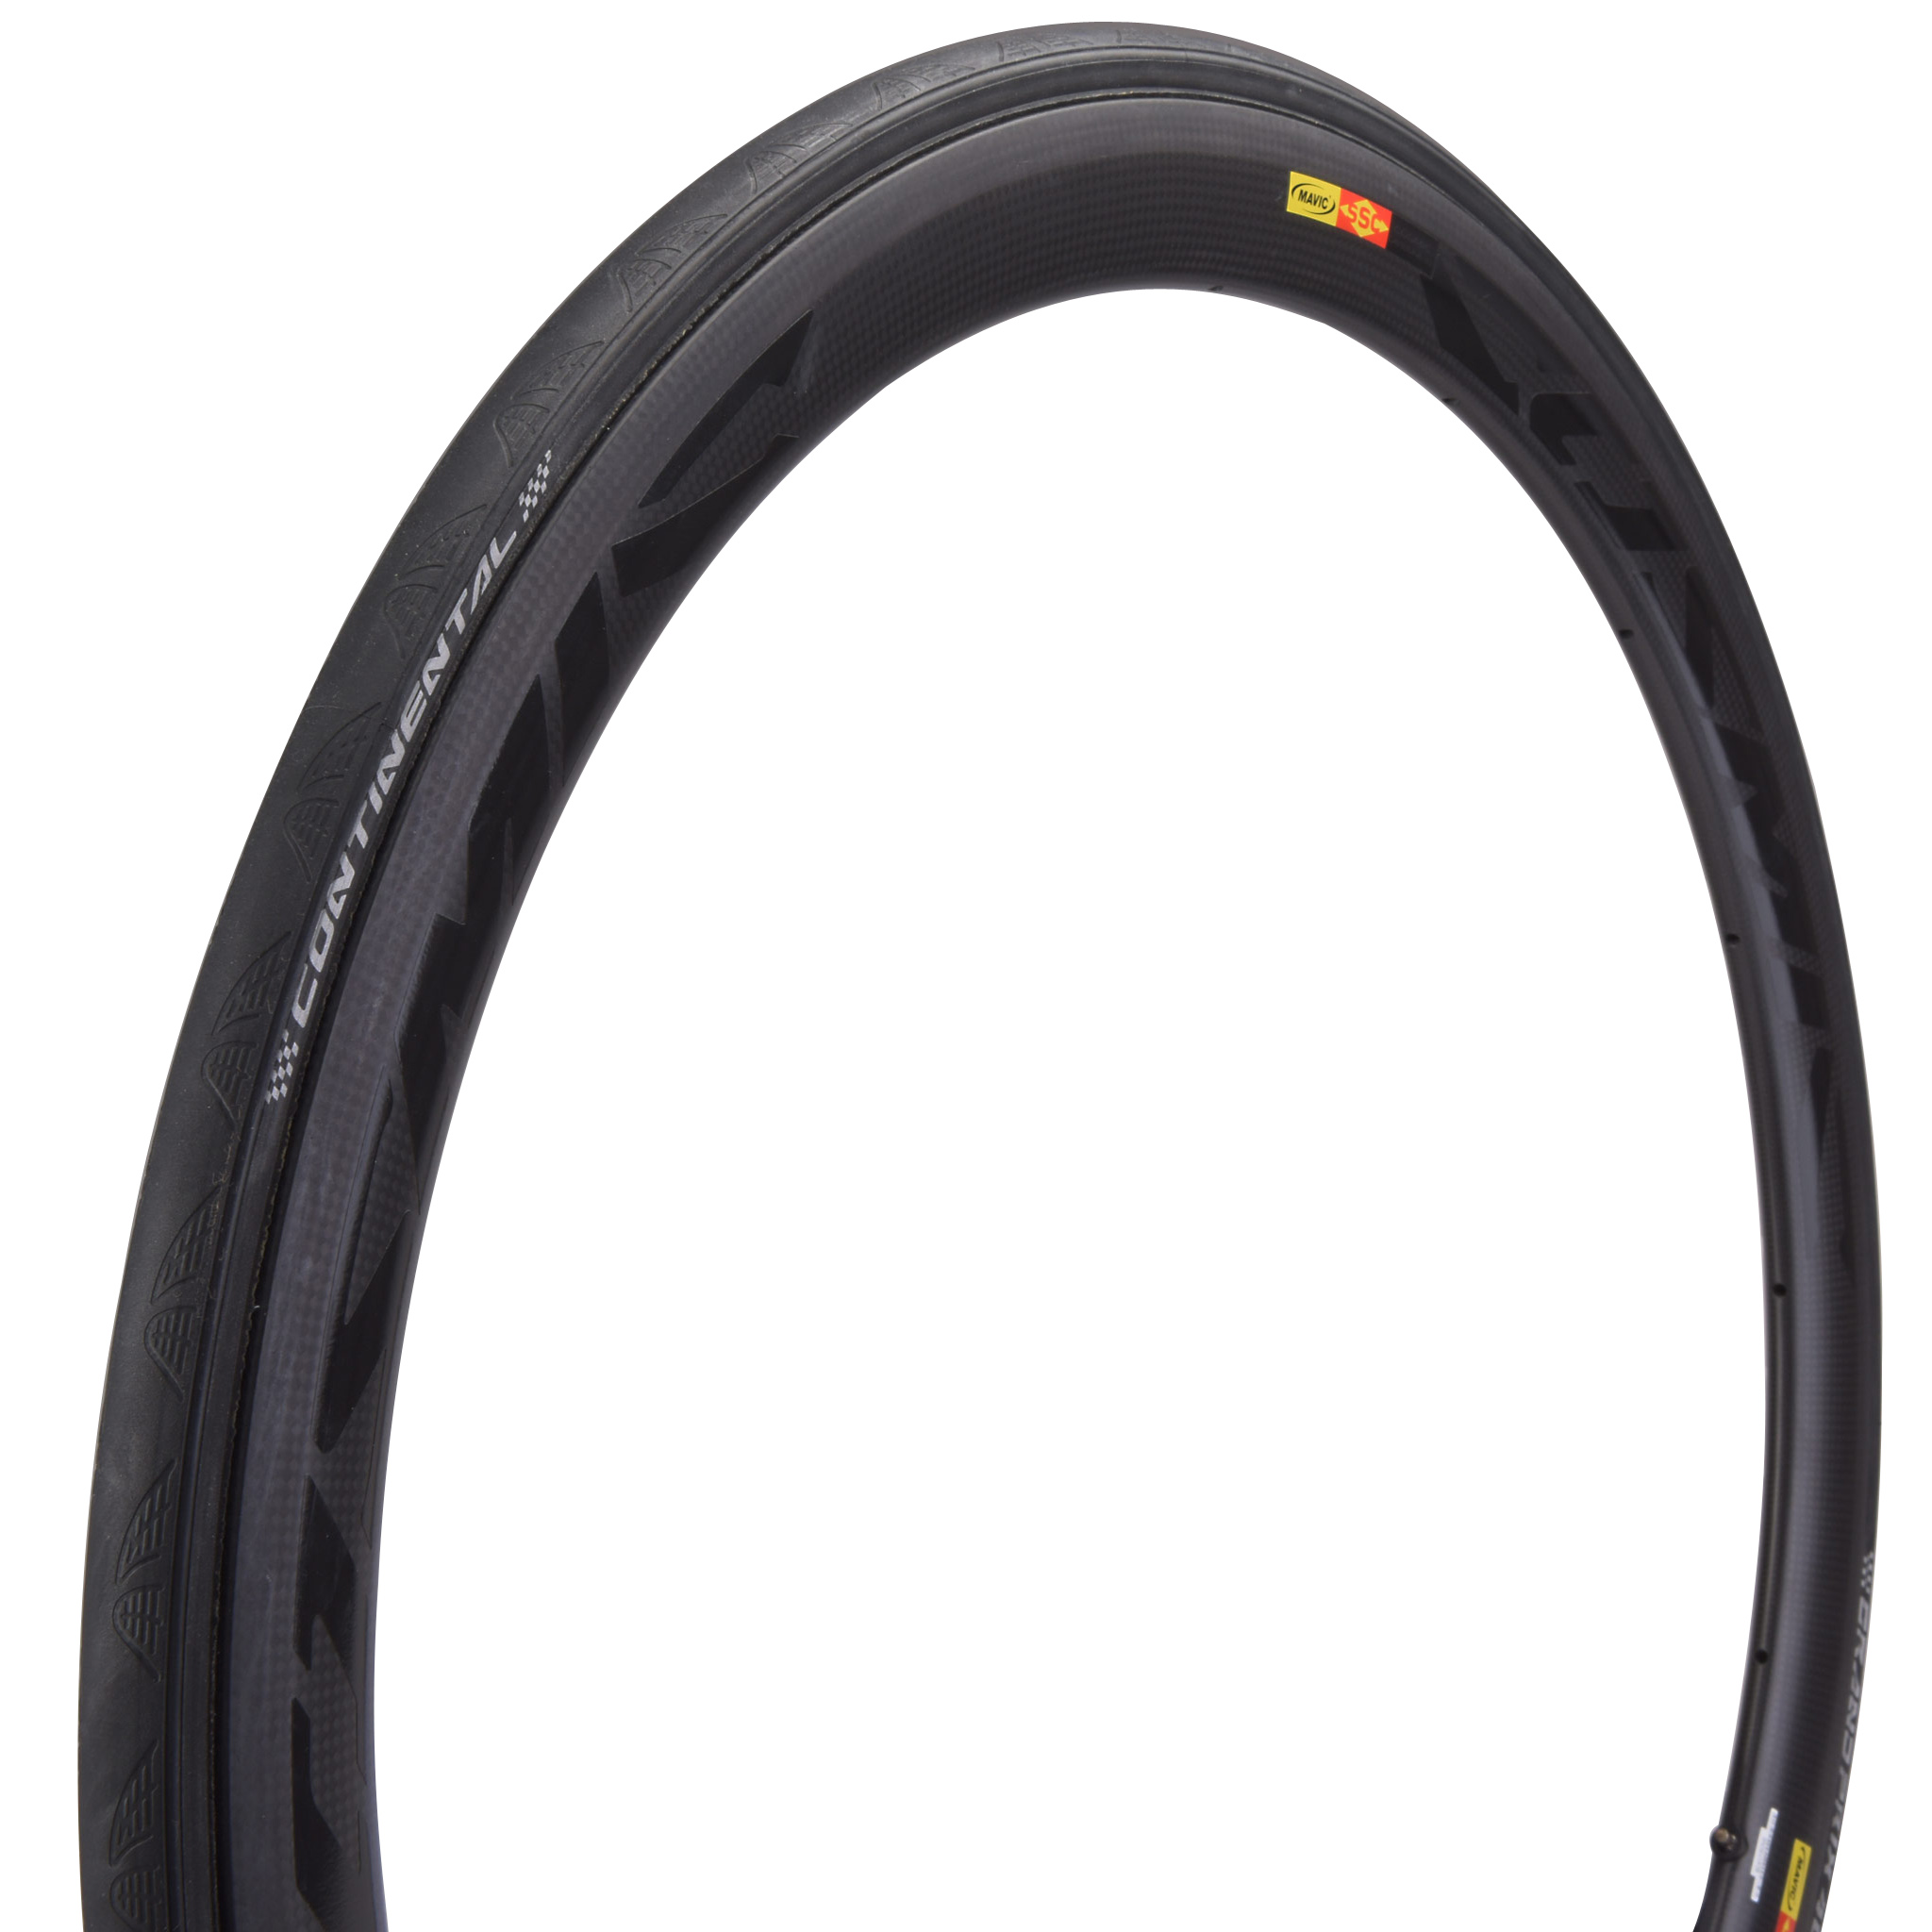 Tubular CONTINENTAL GRAND PRIX 4000 S II 700x22c